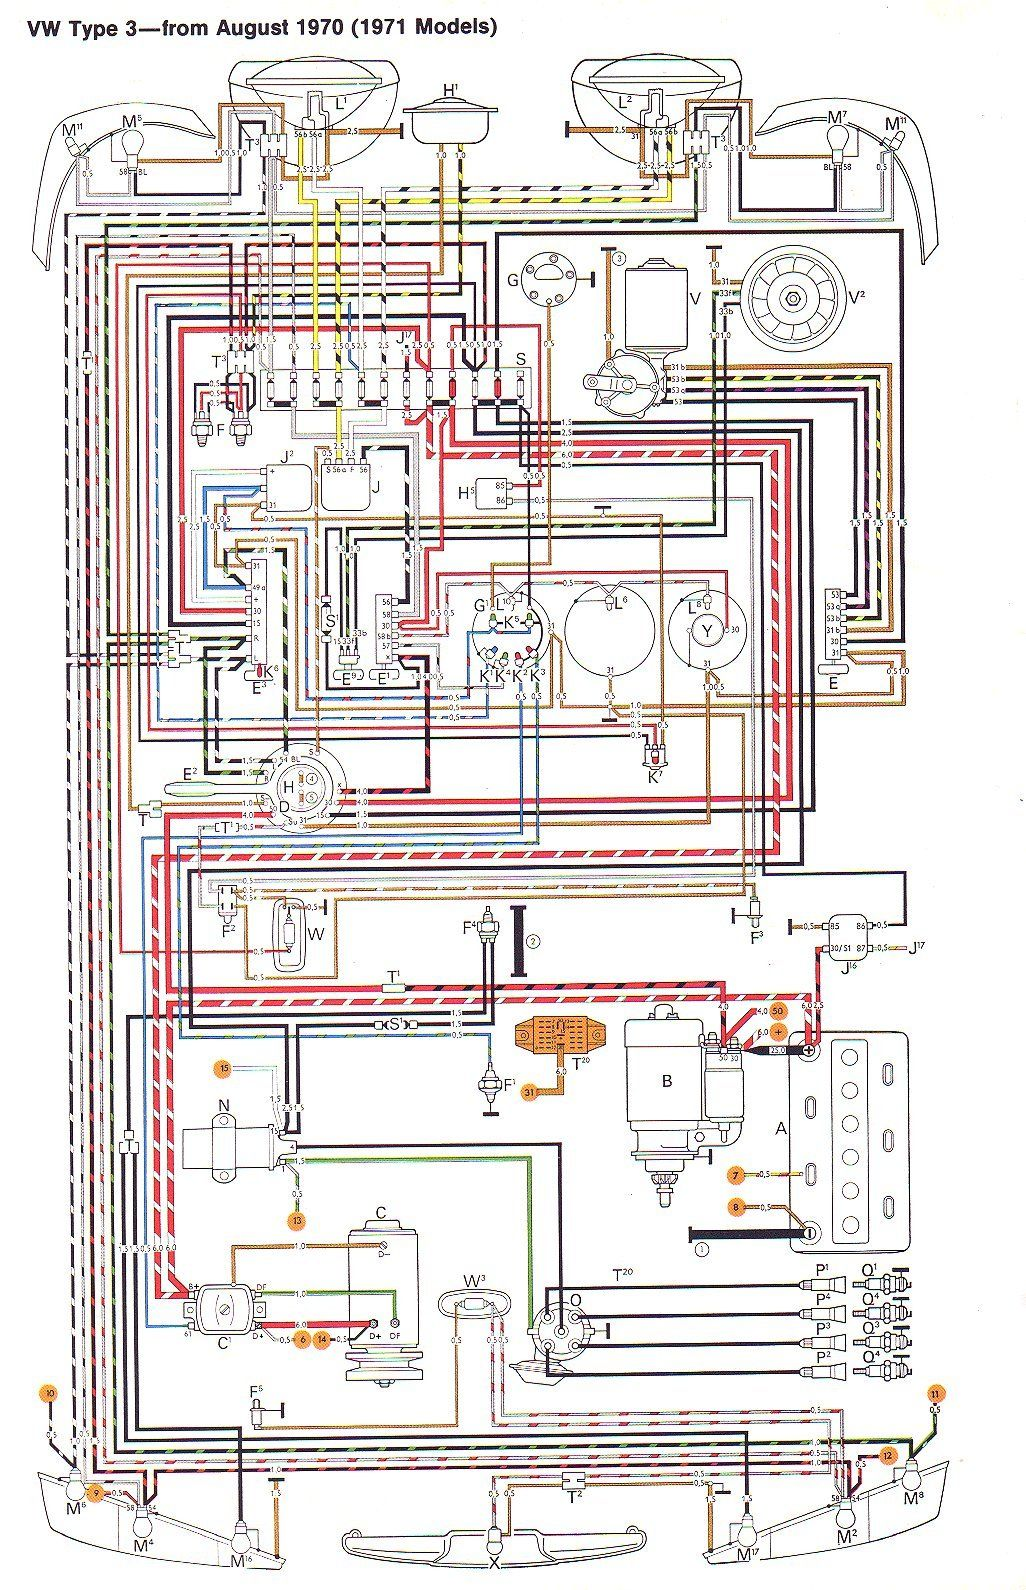 e0db58370f79a63d02d45f00cf63f44a 71 vw t3 wiring diagram ruthie pinterest volkswagen, engine vw golf 3 electrical wiring diagram at mifinder.co